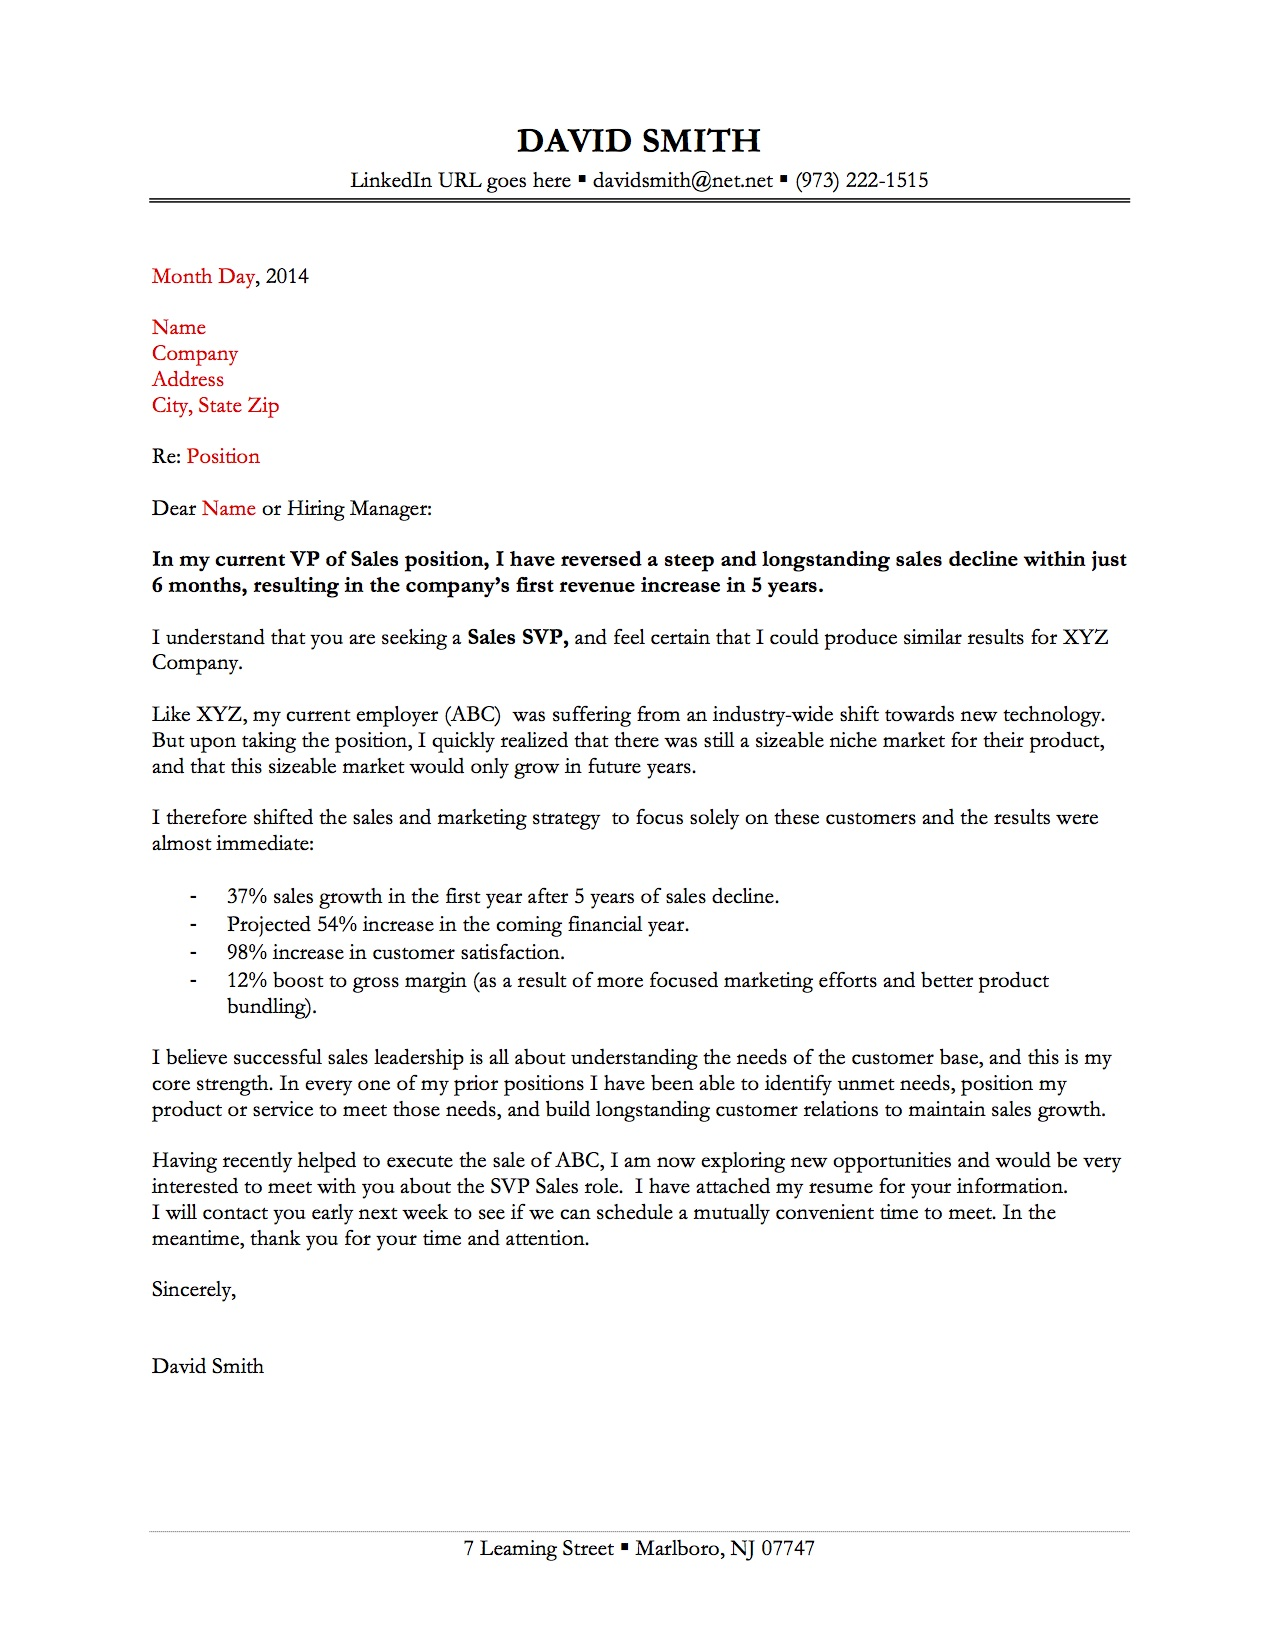 Cover Letter Sample For No Experience Student   Cover Letter Templates Pinterest